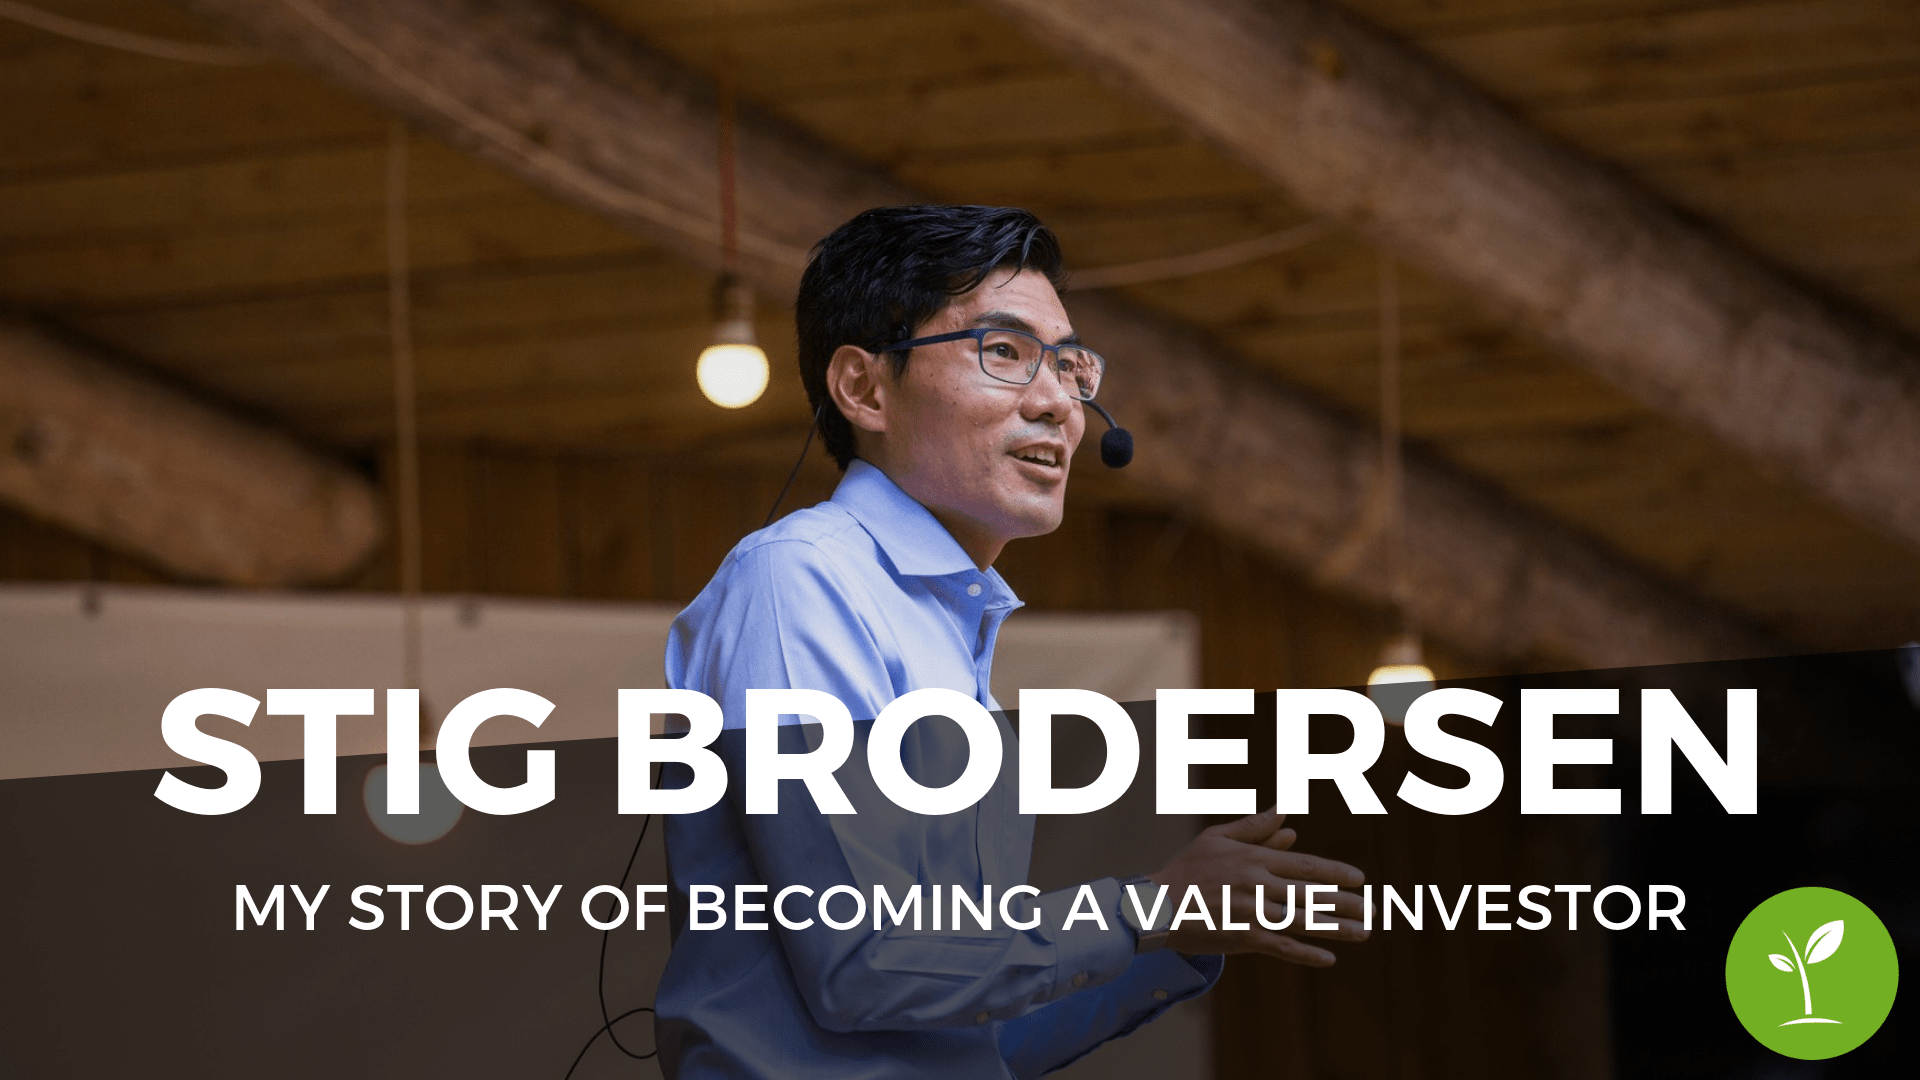 Stig Brodersen - My story of becoming a value investor